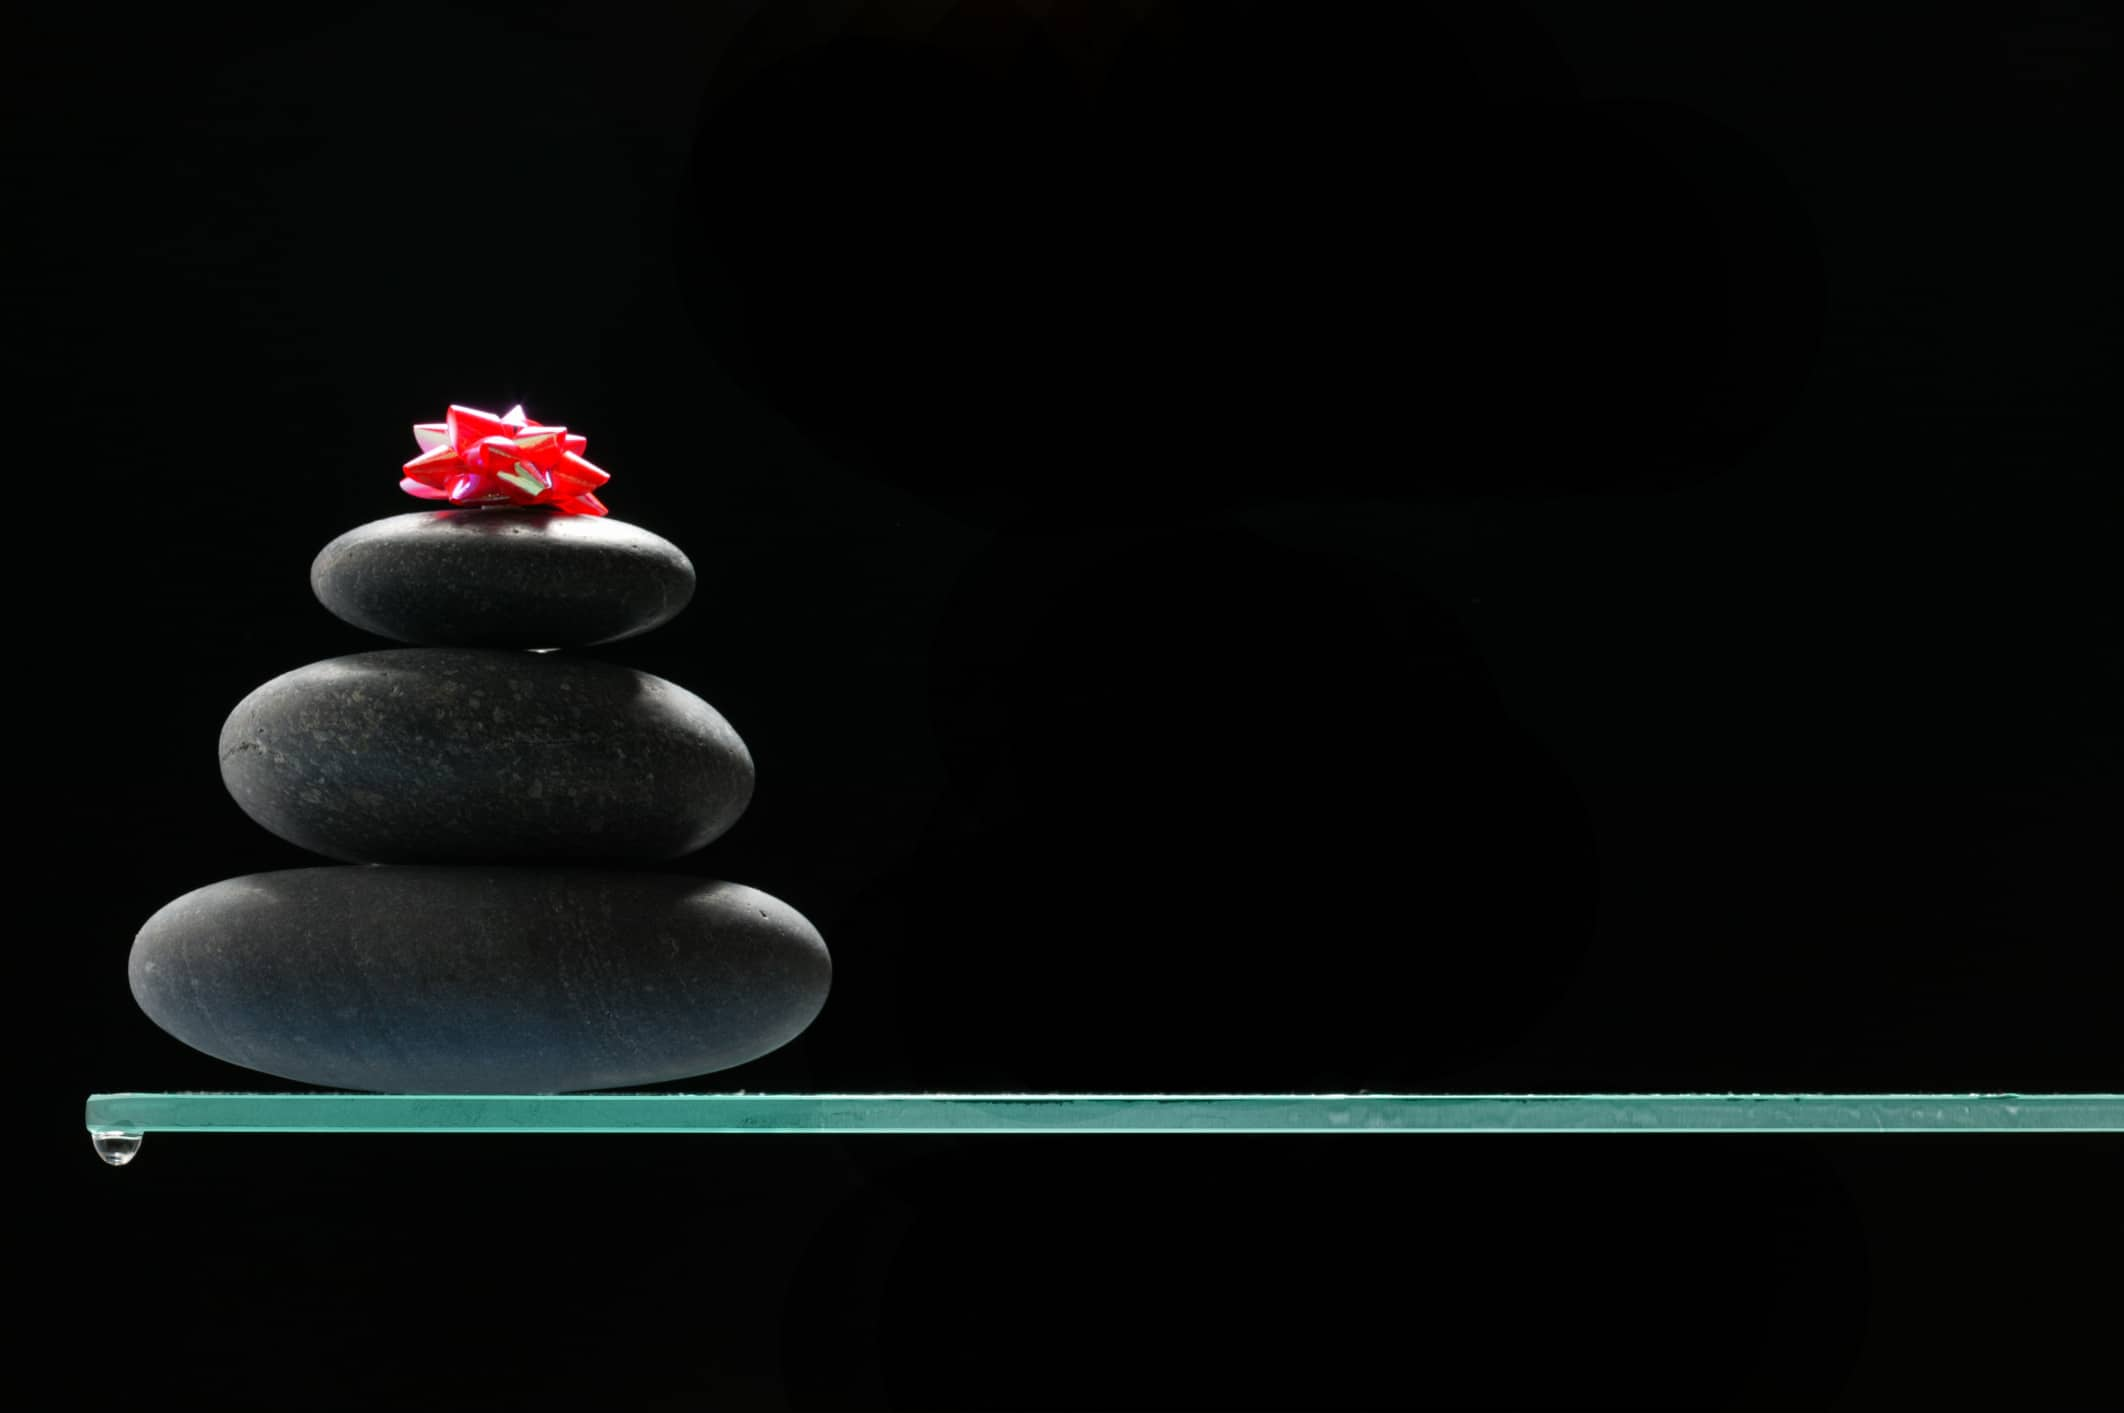 Feng Shui Interior Design and Decoration Philosophy. The balance of pebbles